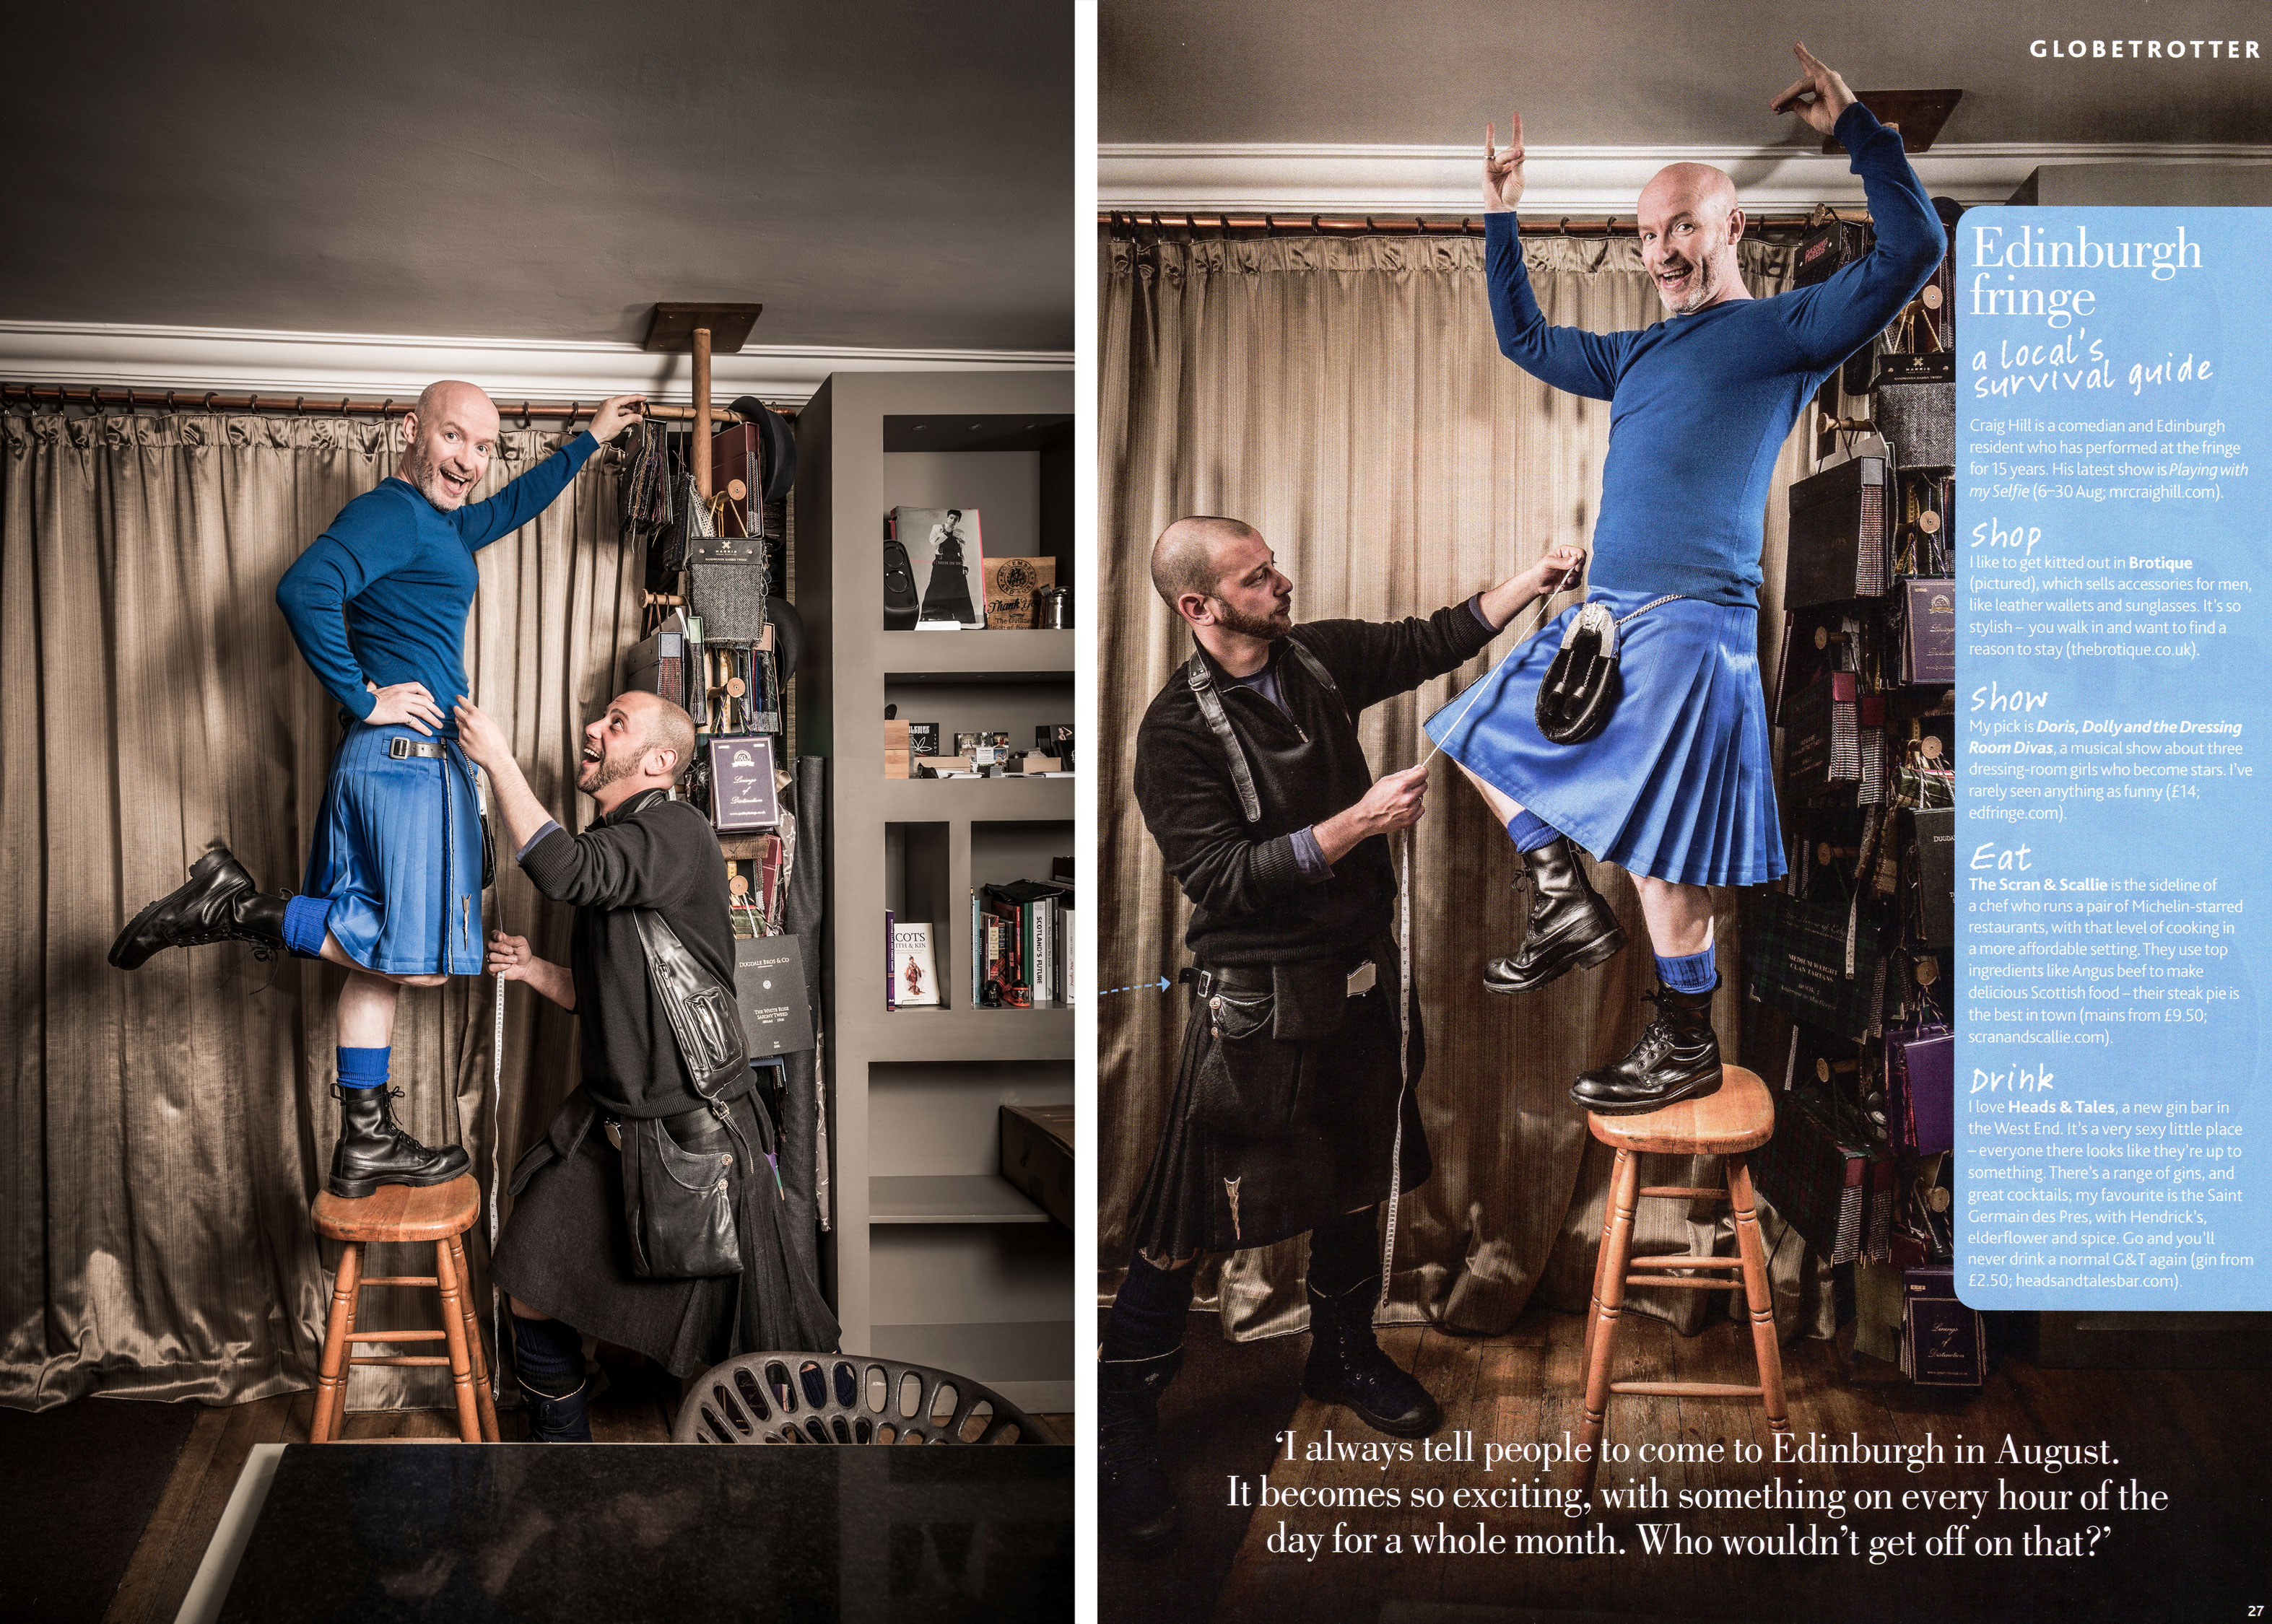 Craig Hill Scottish comedian standing on table being measured for a kilt, Edinburgh